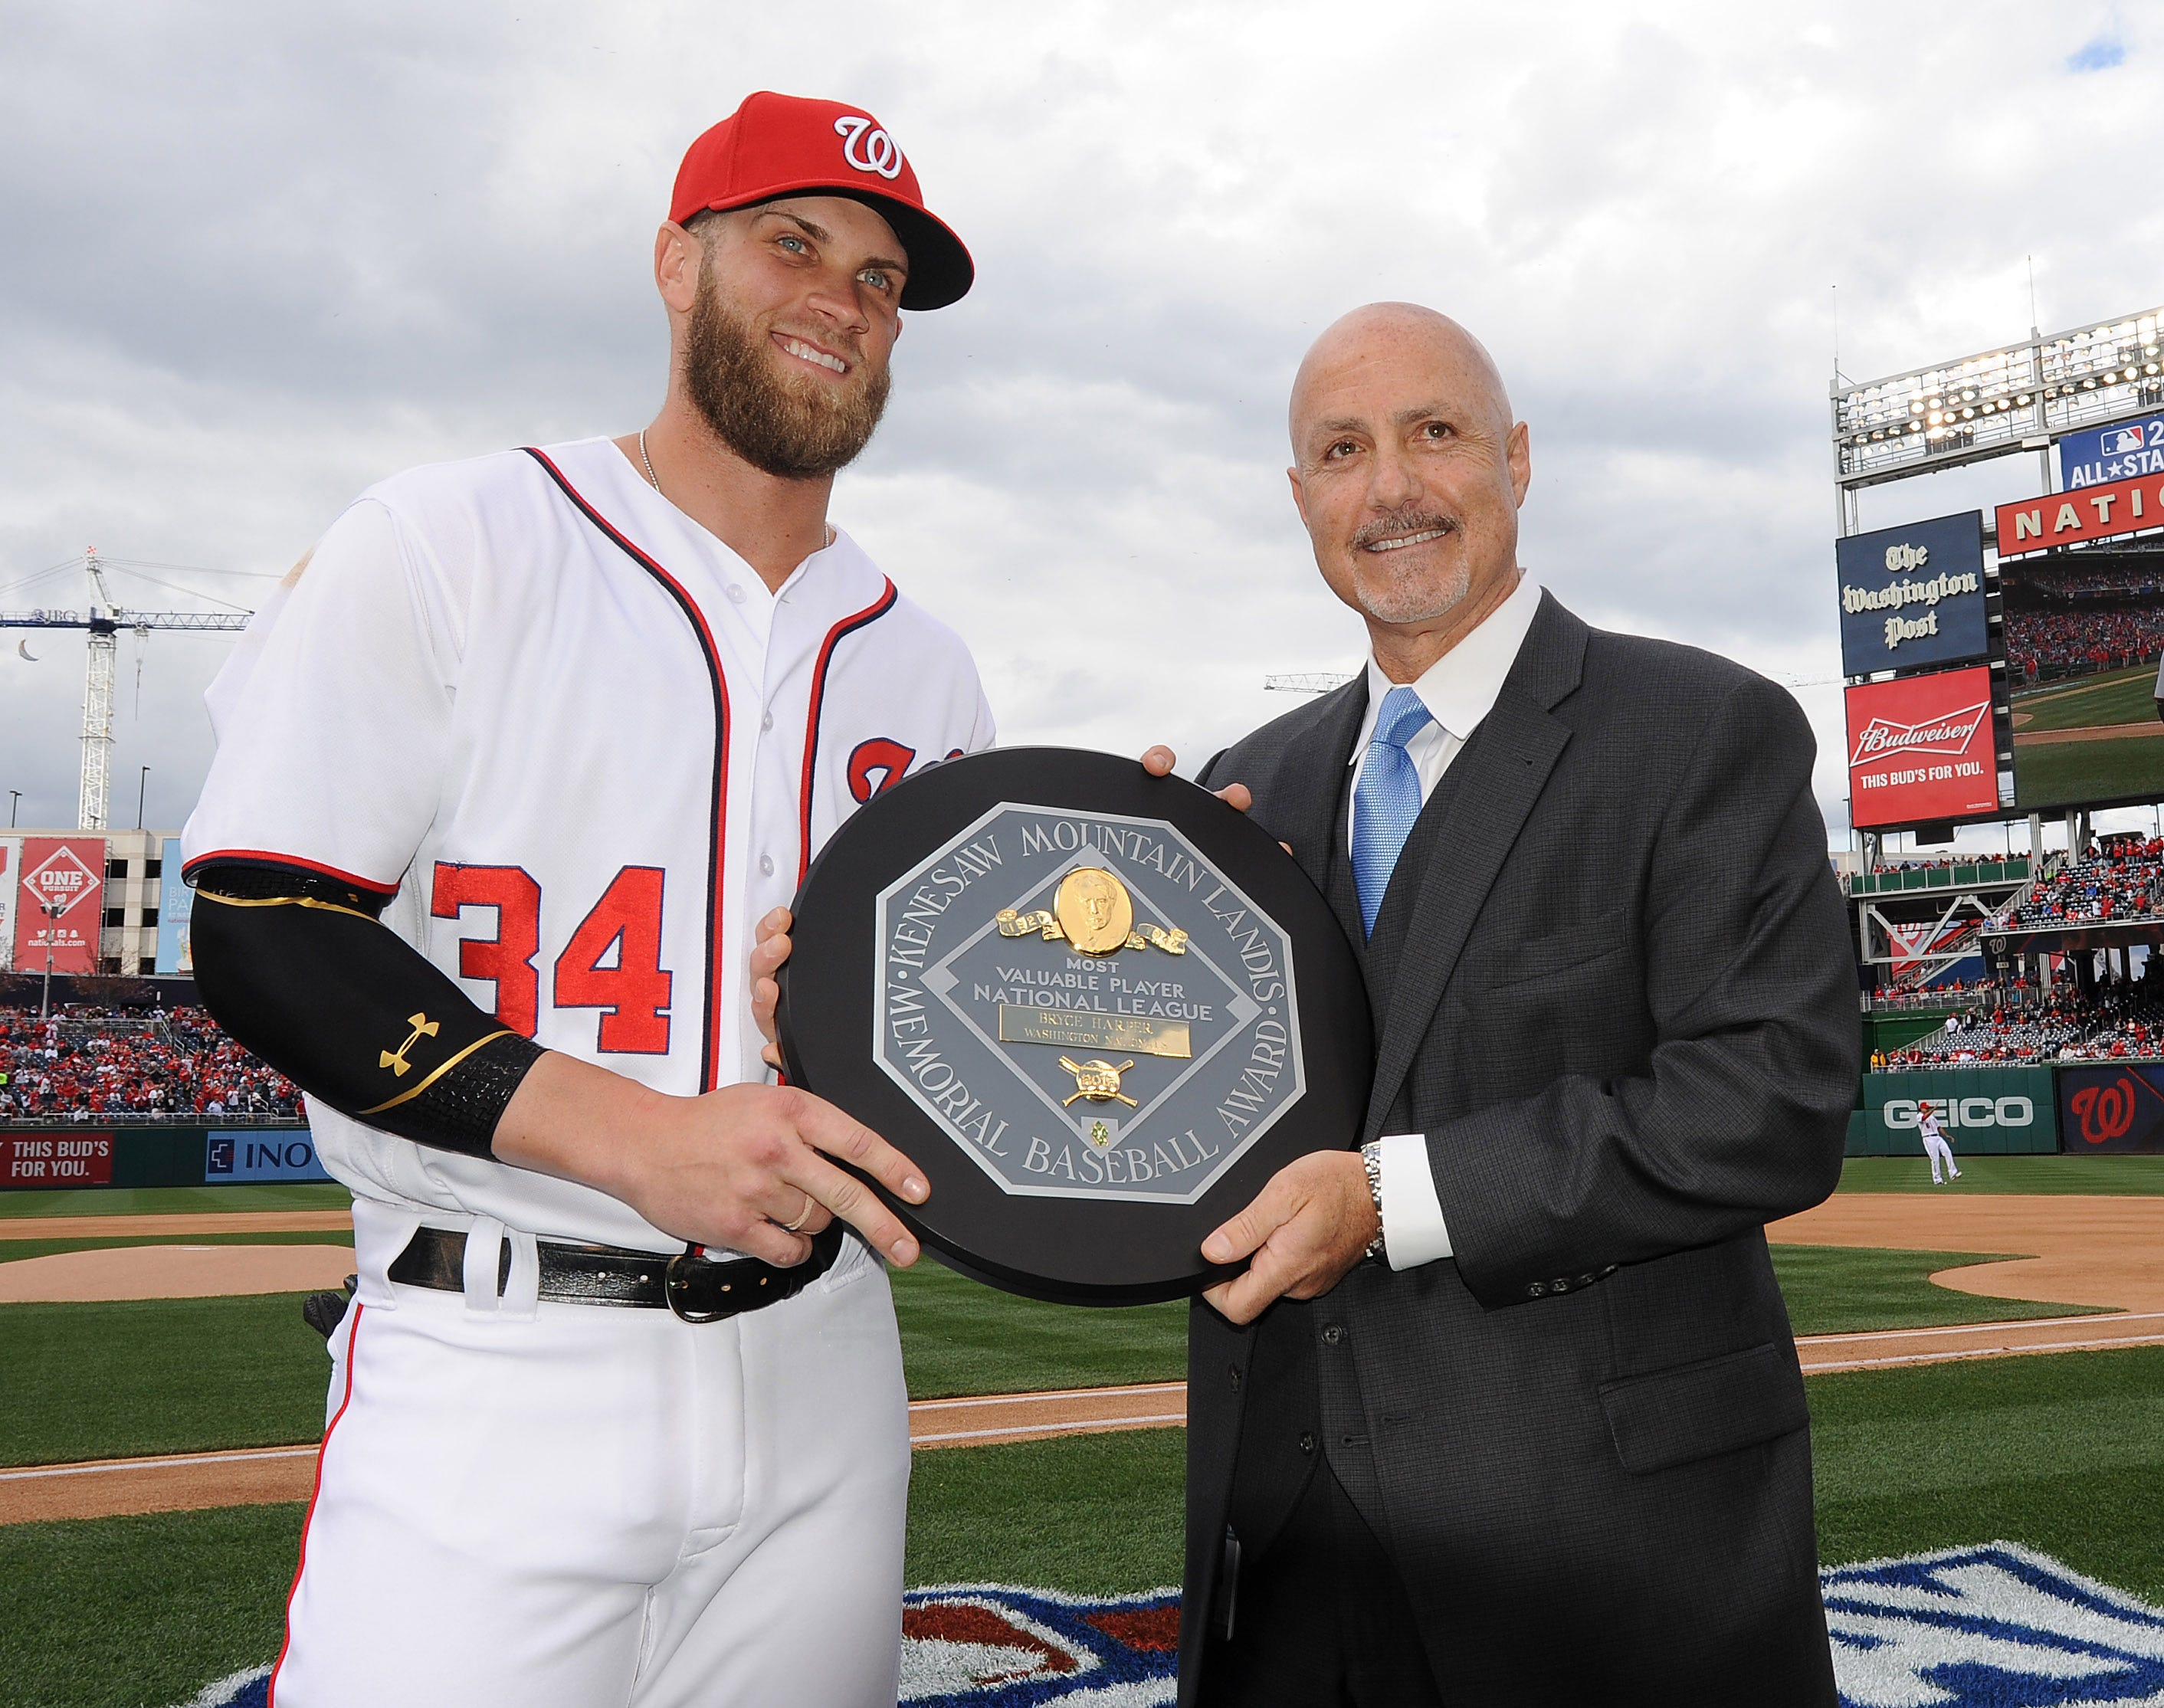 http   www.usatoday.com picture-gallery sports mlb 2016 02 26 recent ... 11781307b61e